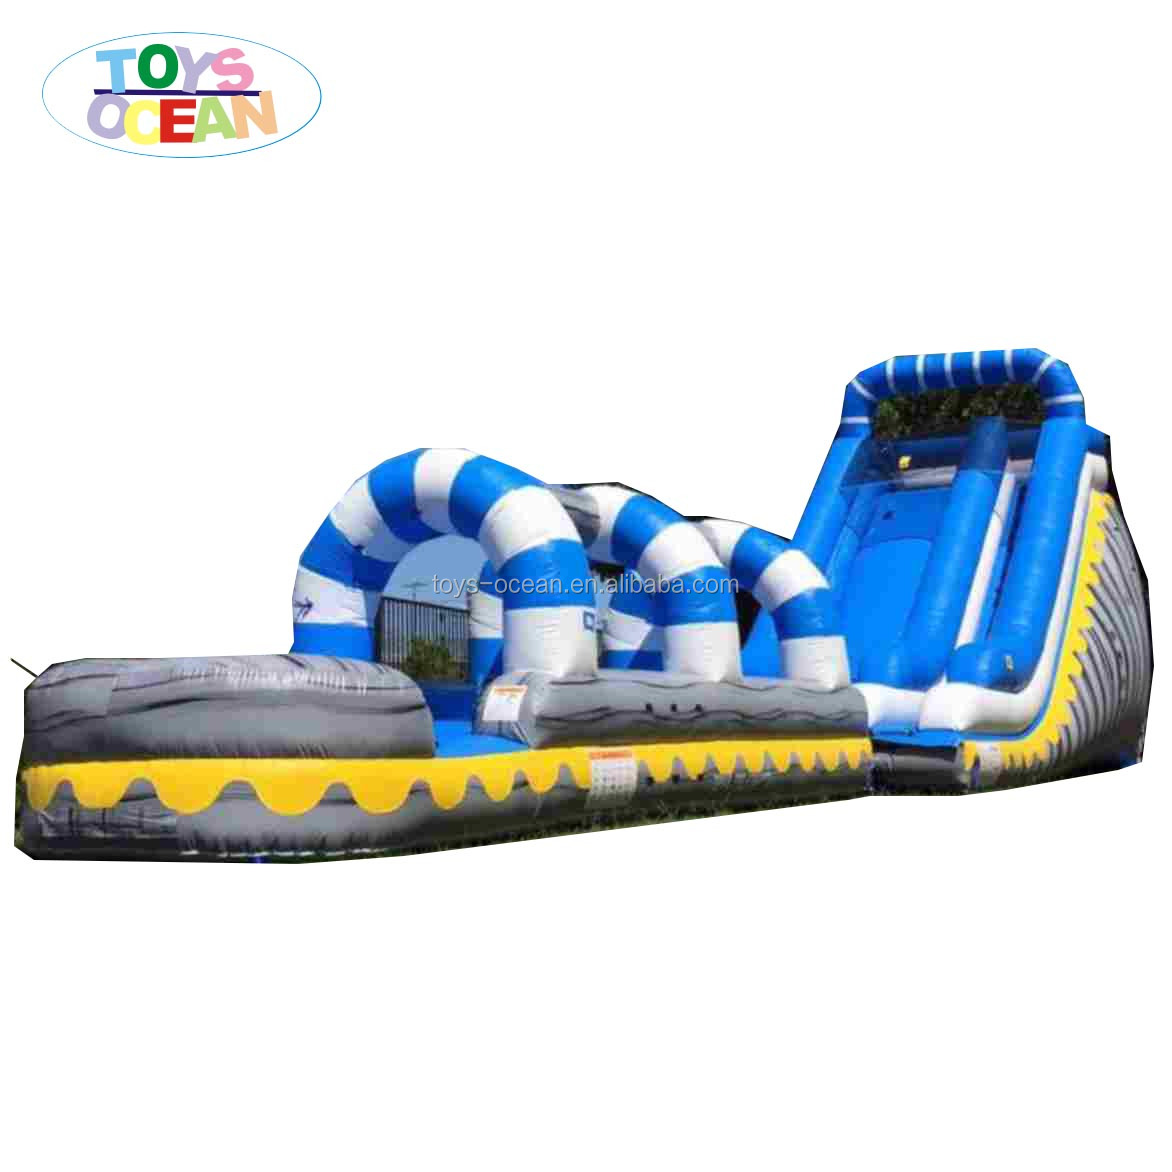 Double Lane Used Inflatable Dry Slide Blue Big Slides For Sale